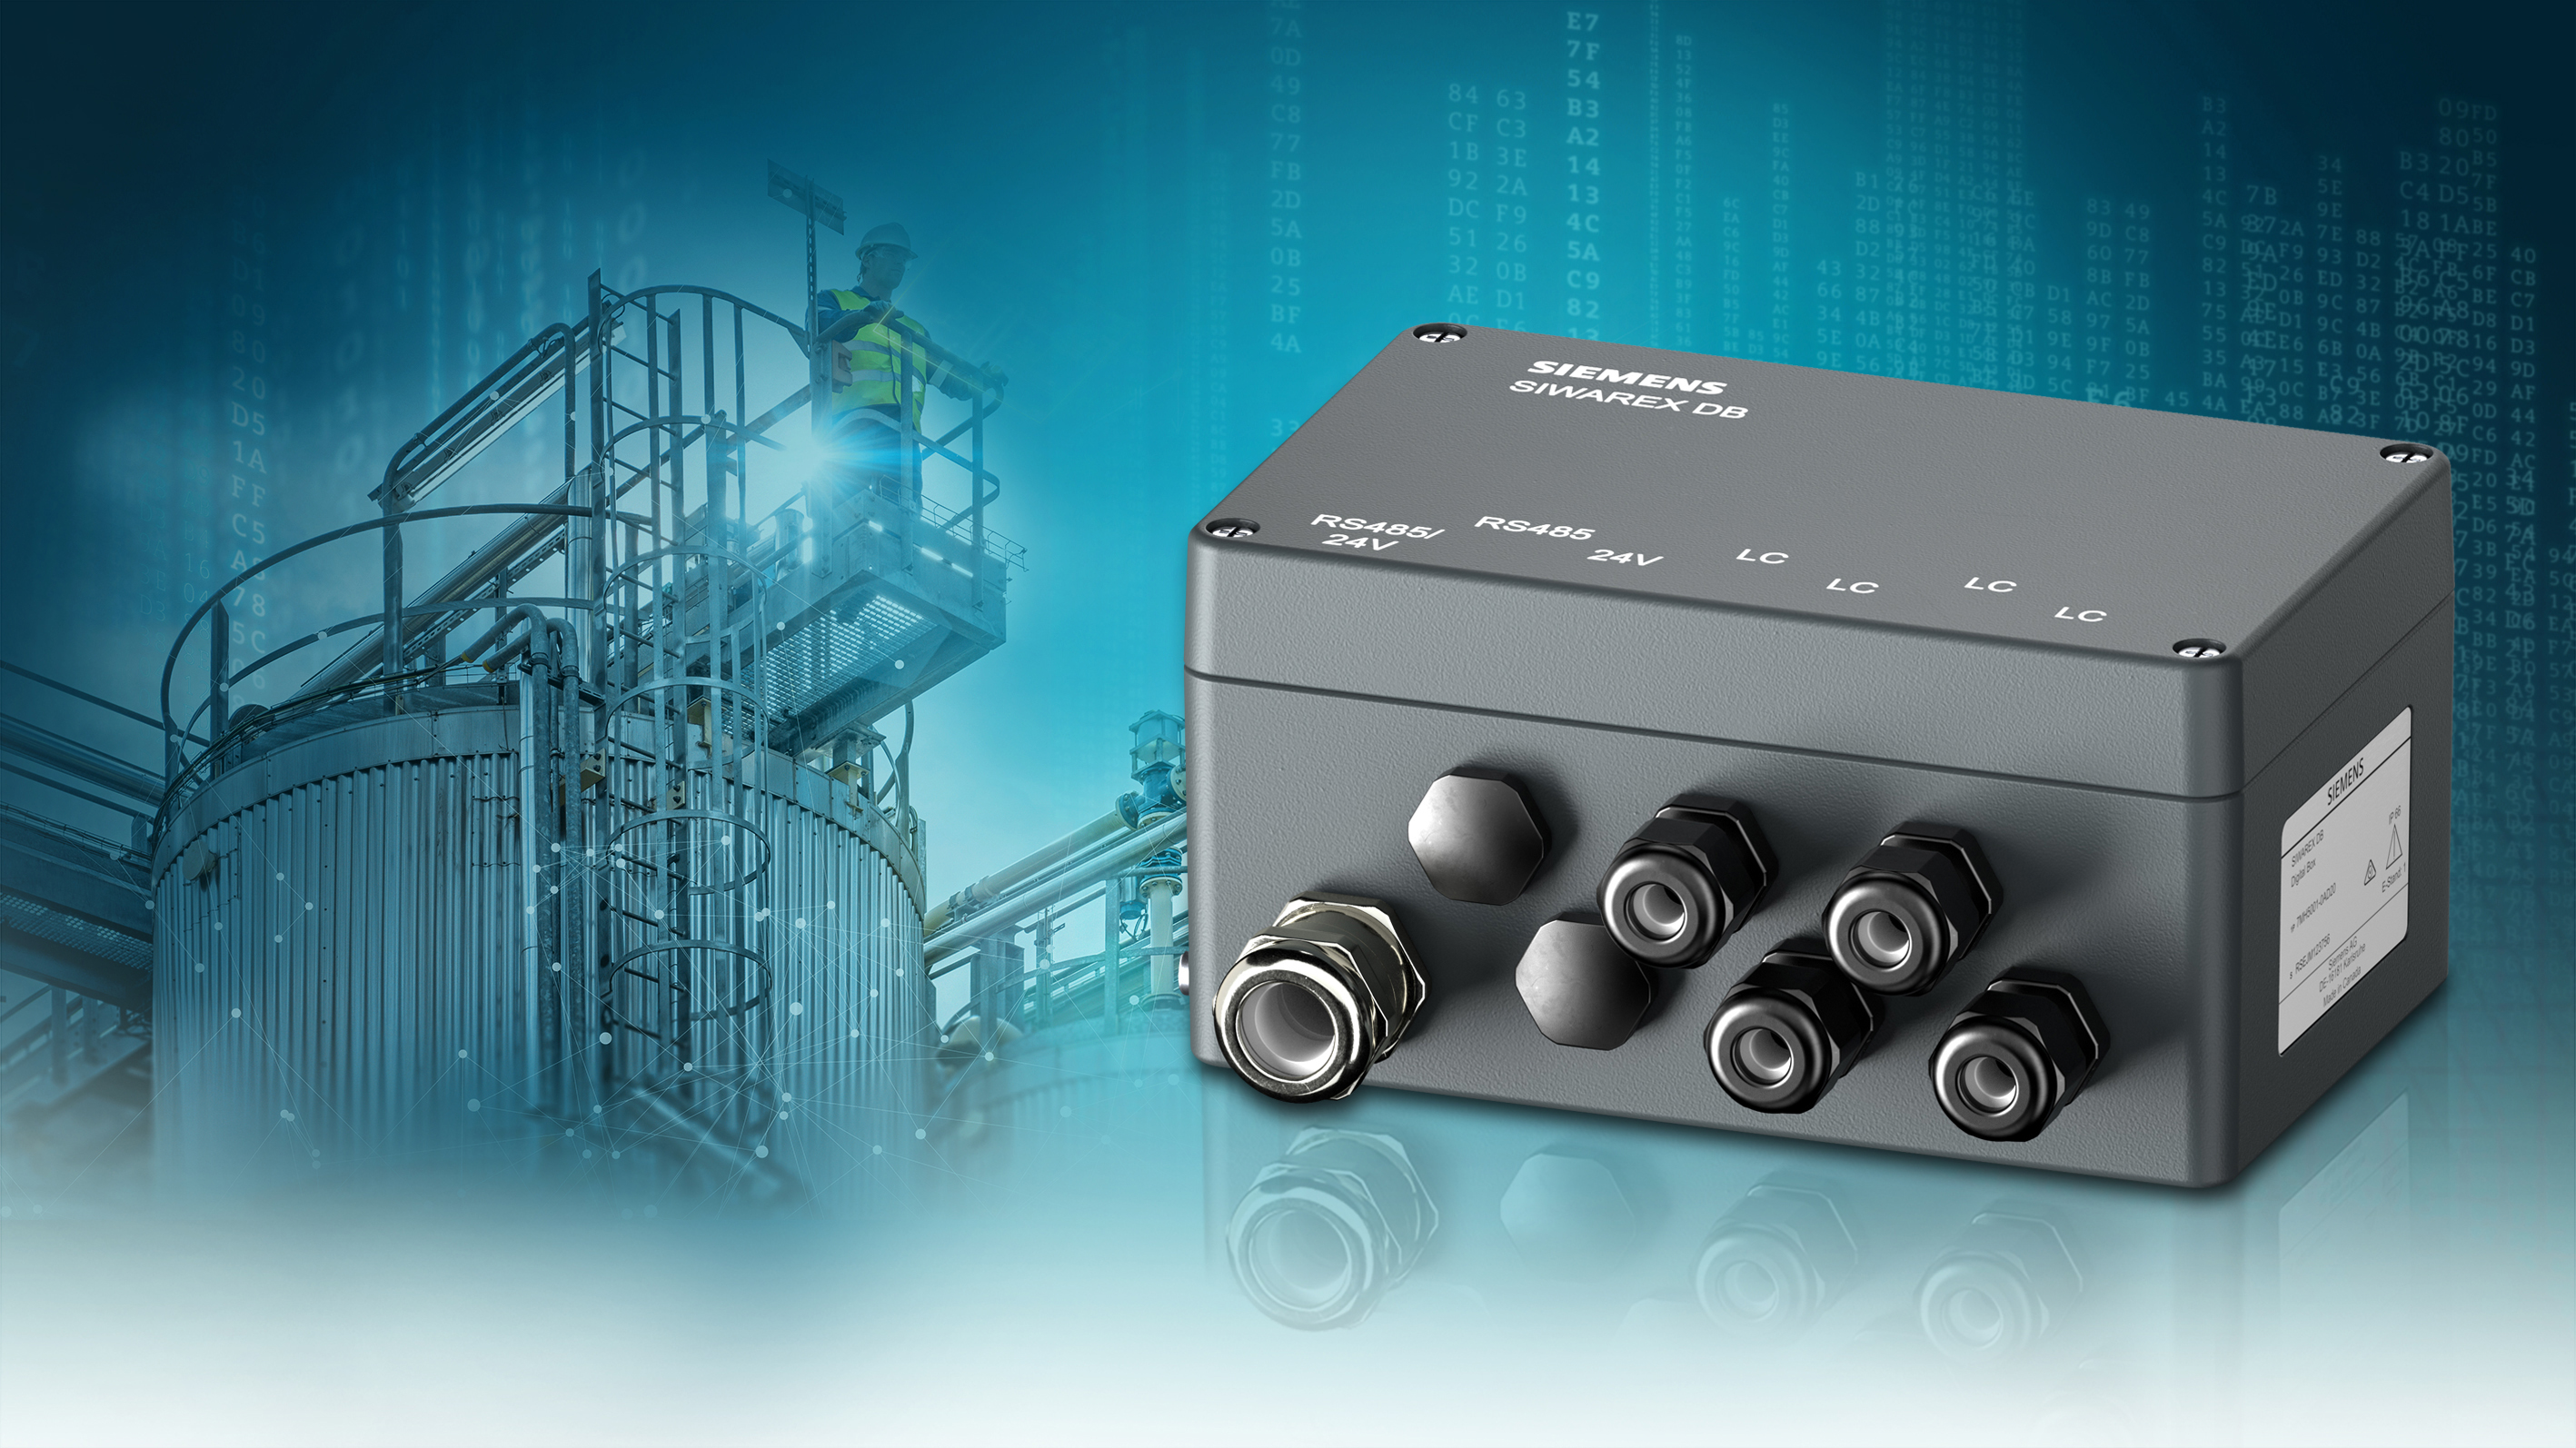 Digital junction box - increased transparency in monitoring and diagnostics Siemens